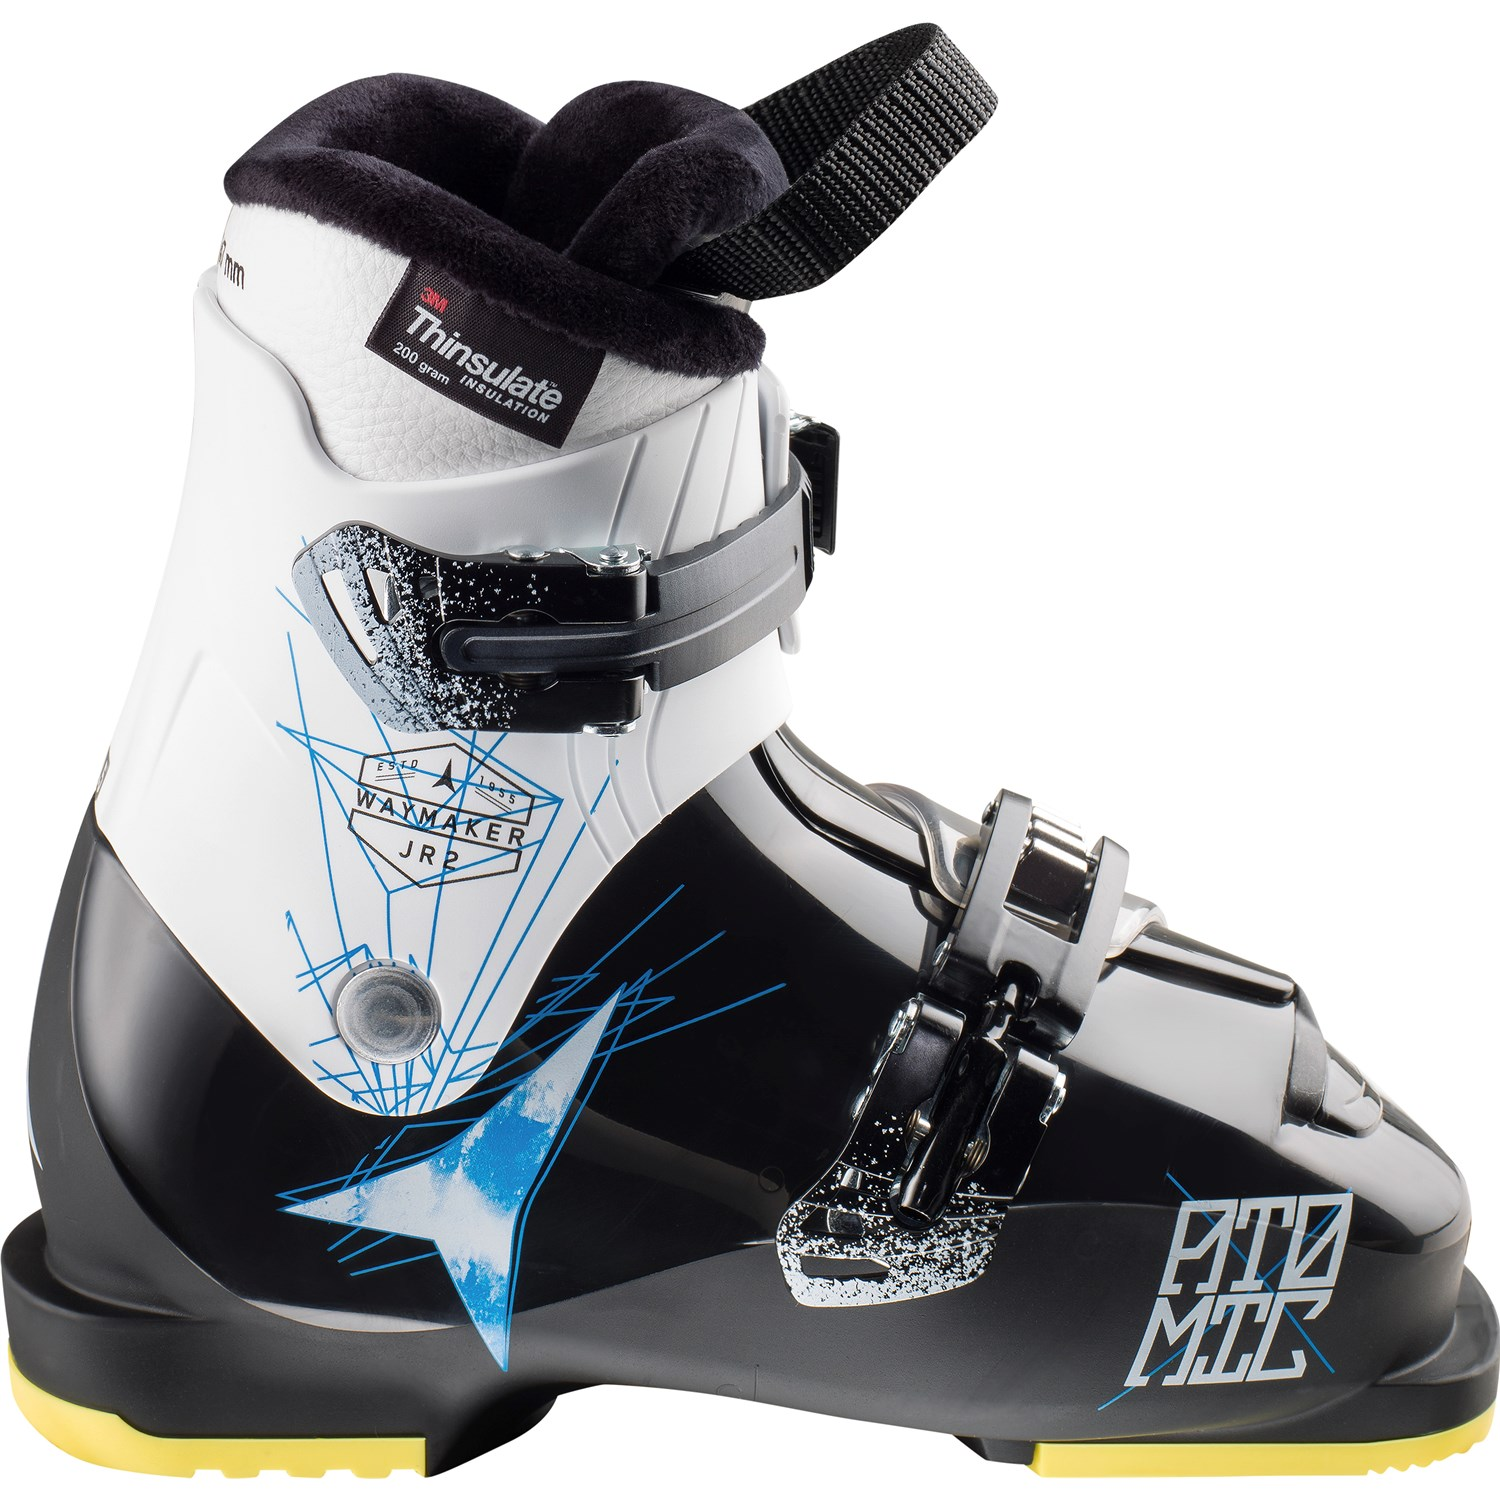 Ski boot buying guide. Online shoes for women